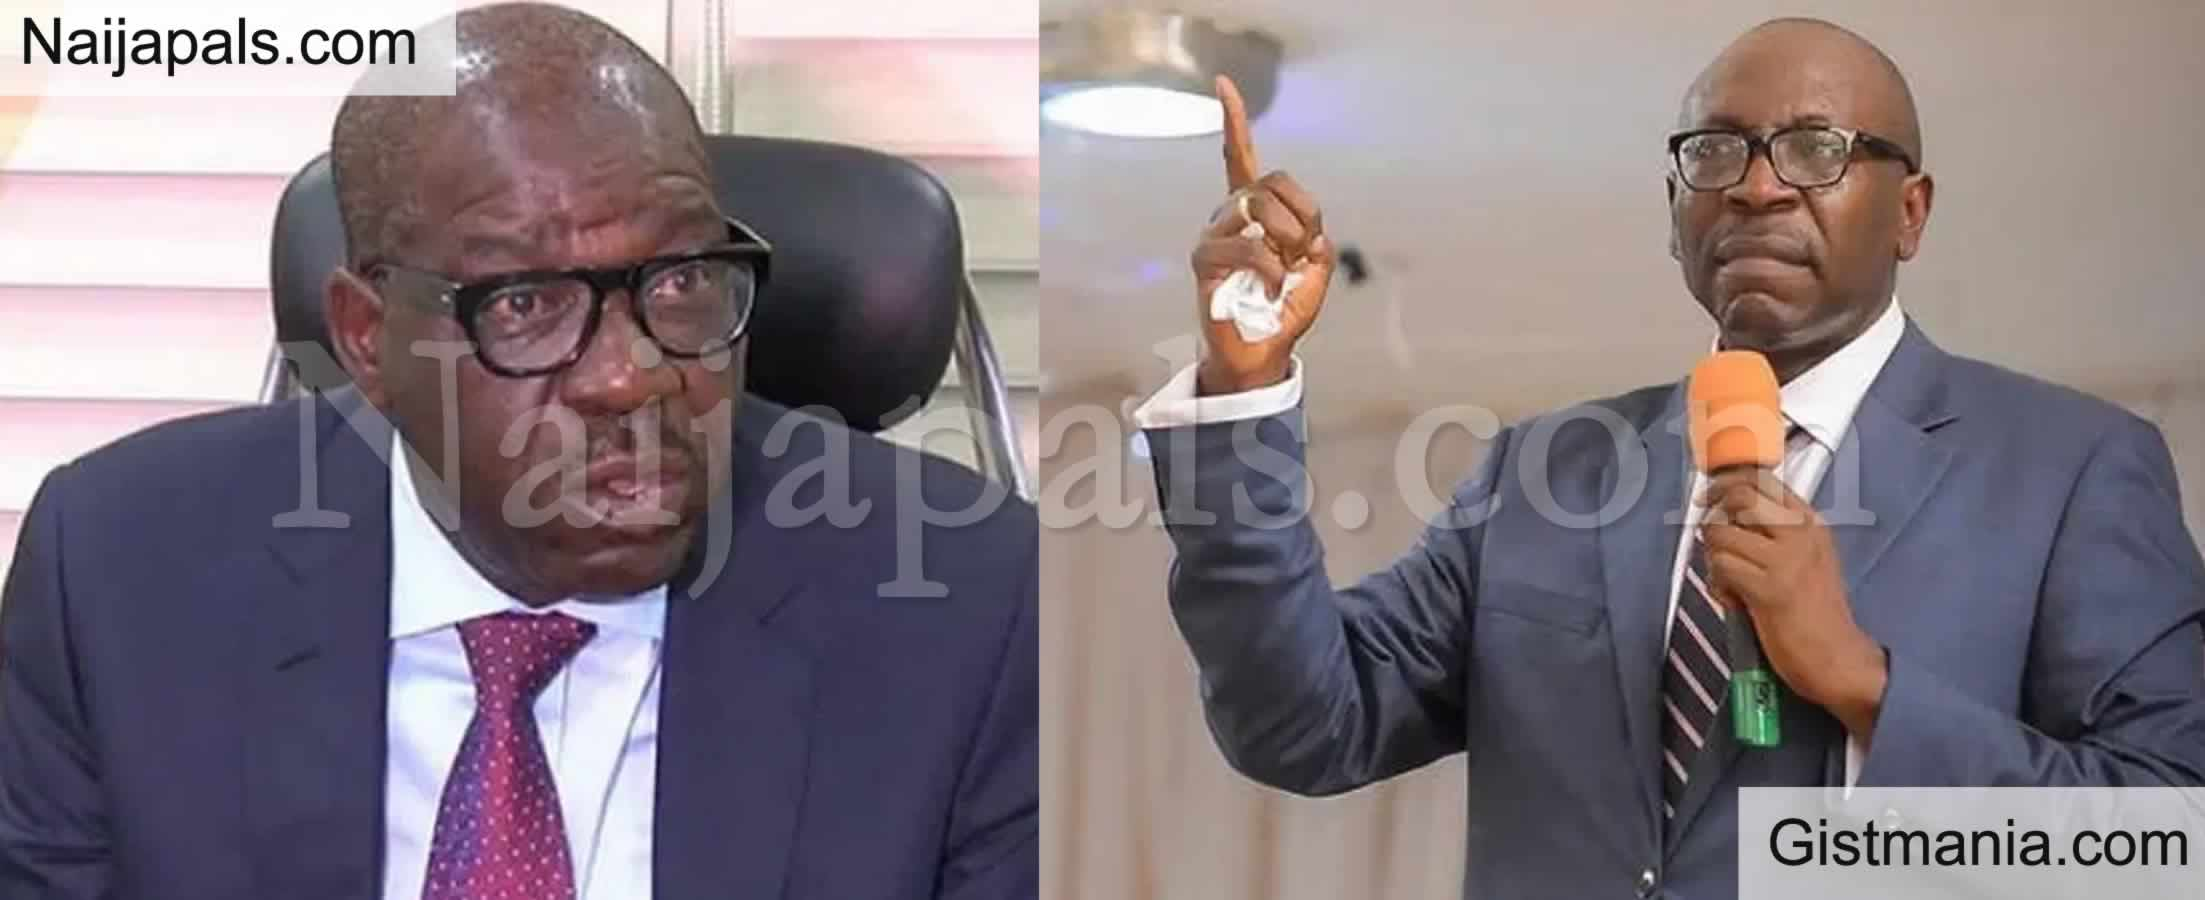 <img alt='.' class='lazyload' data-src='https://img.gistmania.com/emot/news.gif' /> GAME OVER! <b>Godwin Obaseki (PDP) Defeats APC In Osagie Ize-Iyamu's Local Government</b>